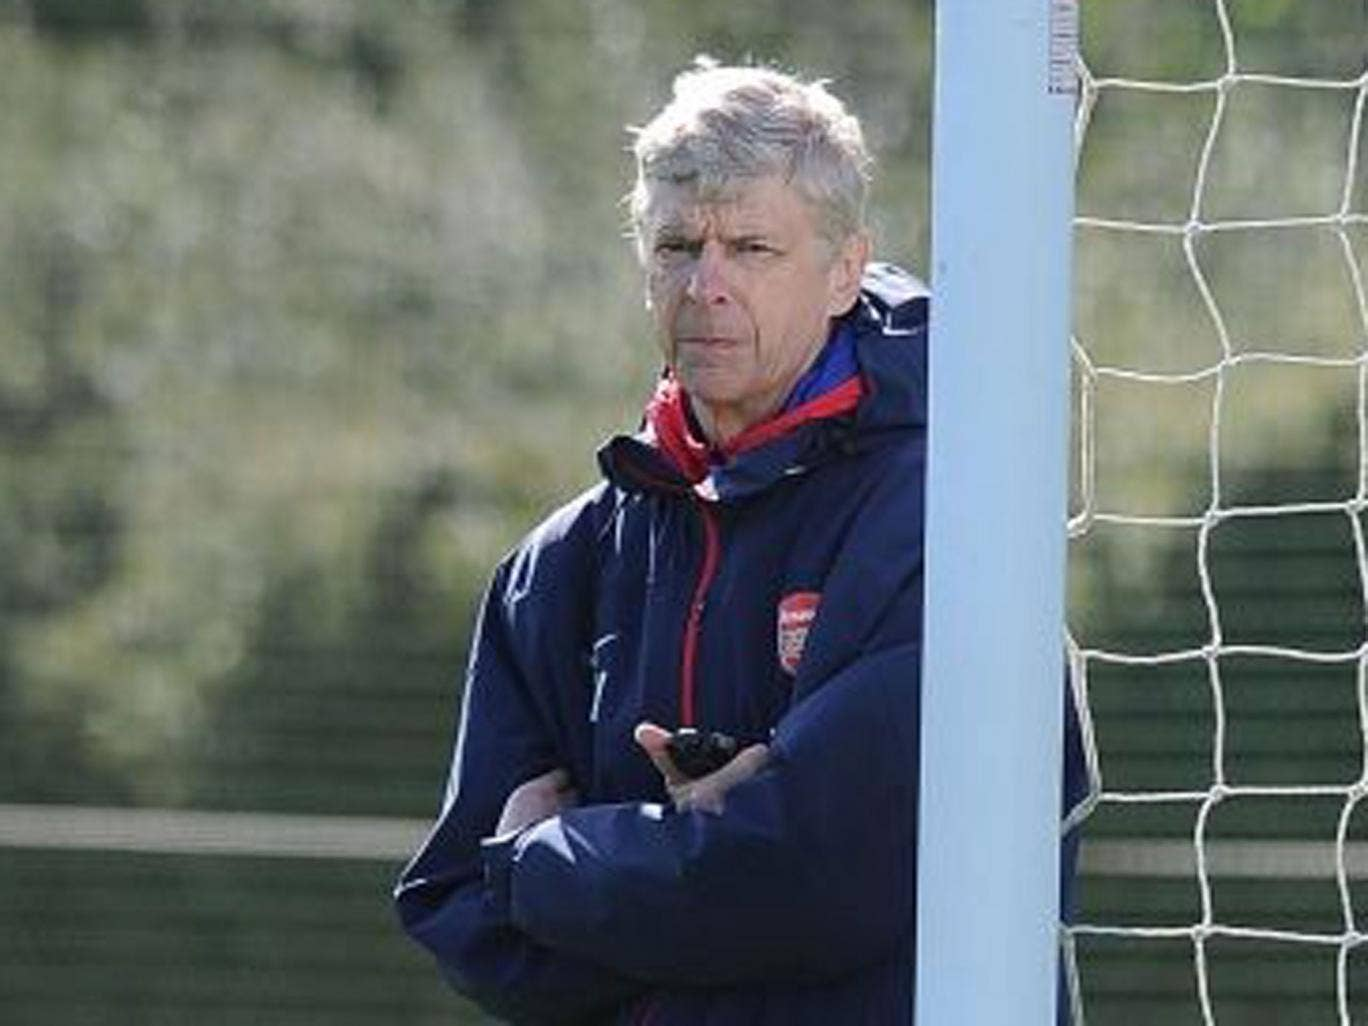 Arsène Wenger has urged his team not to let the 6-0 defeat at Chelsea derail what has been a good season so far